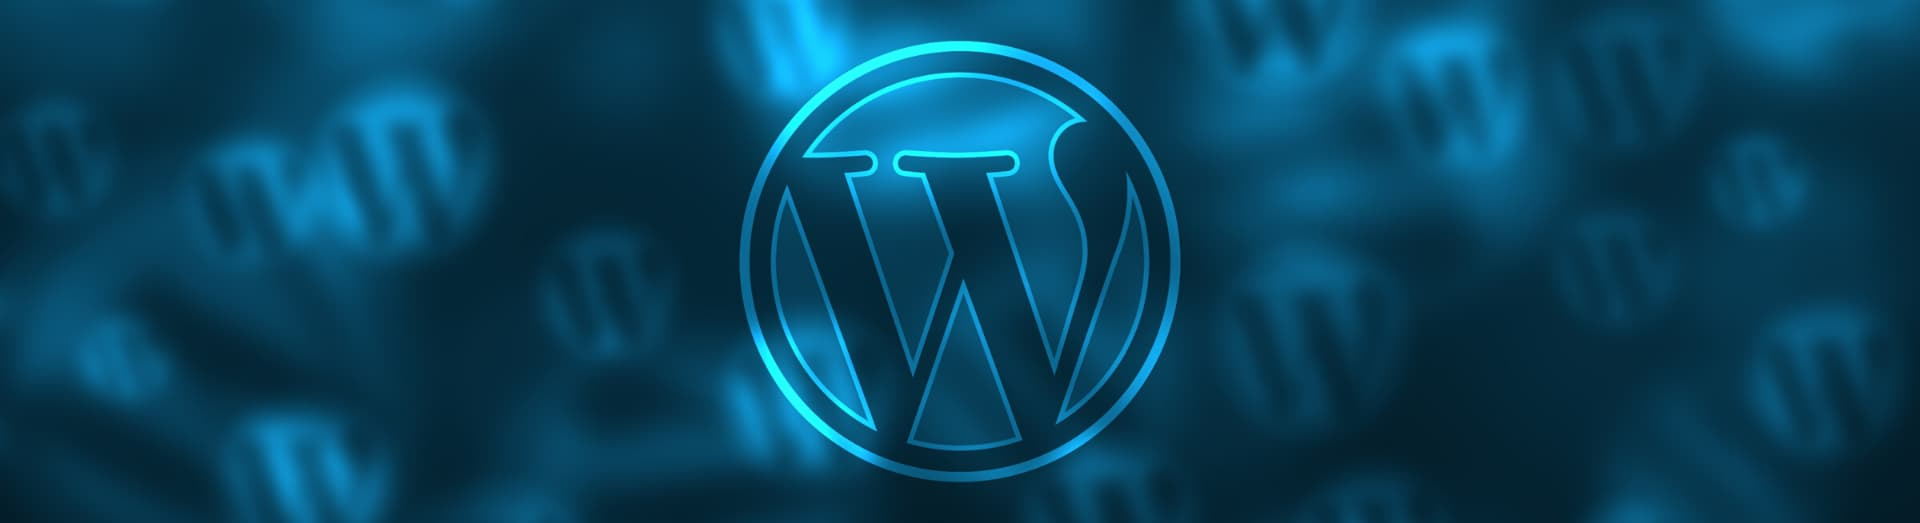 Wordpress + Woocommerce 1